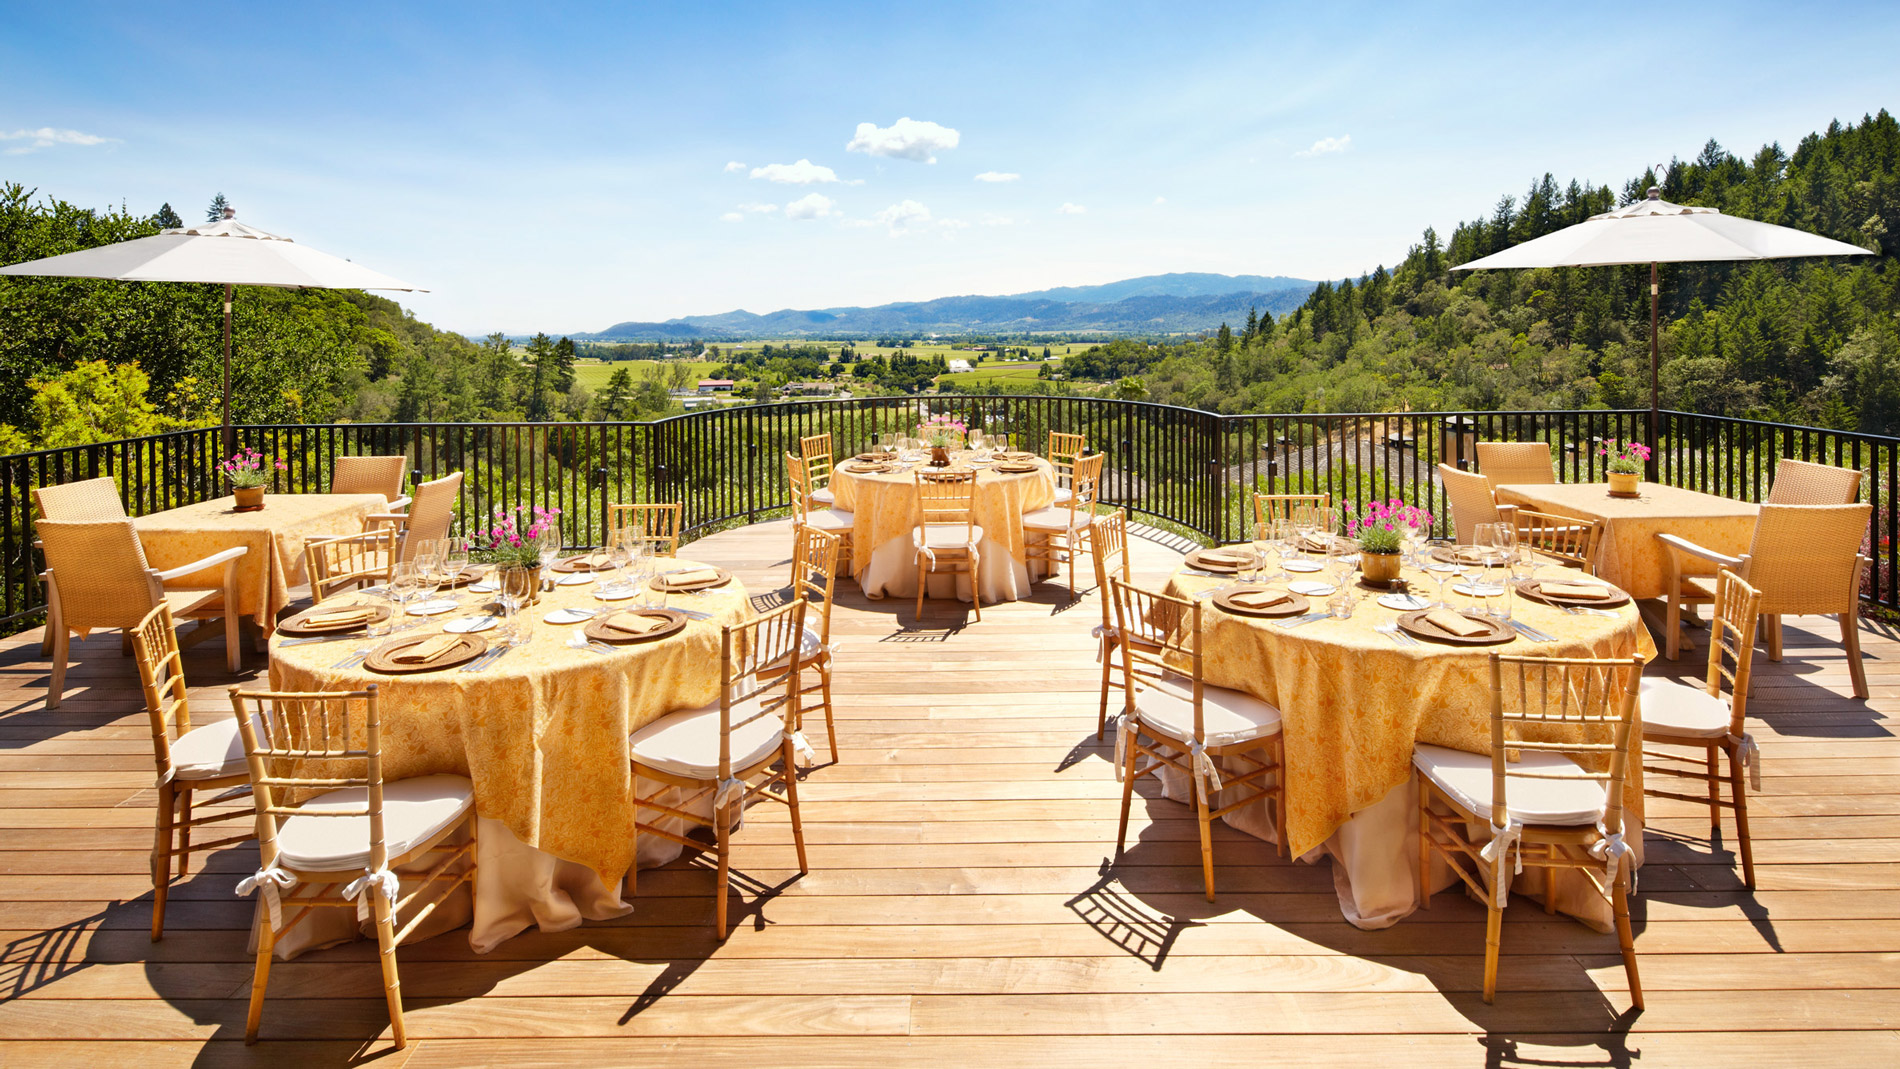 Best wedding venues in napa valley food wine for Best wedding locations in us